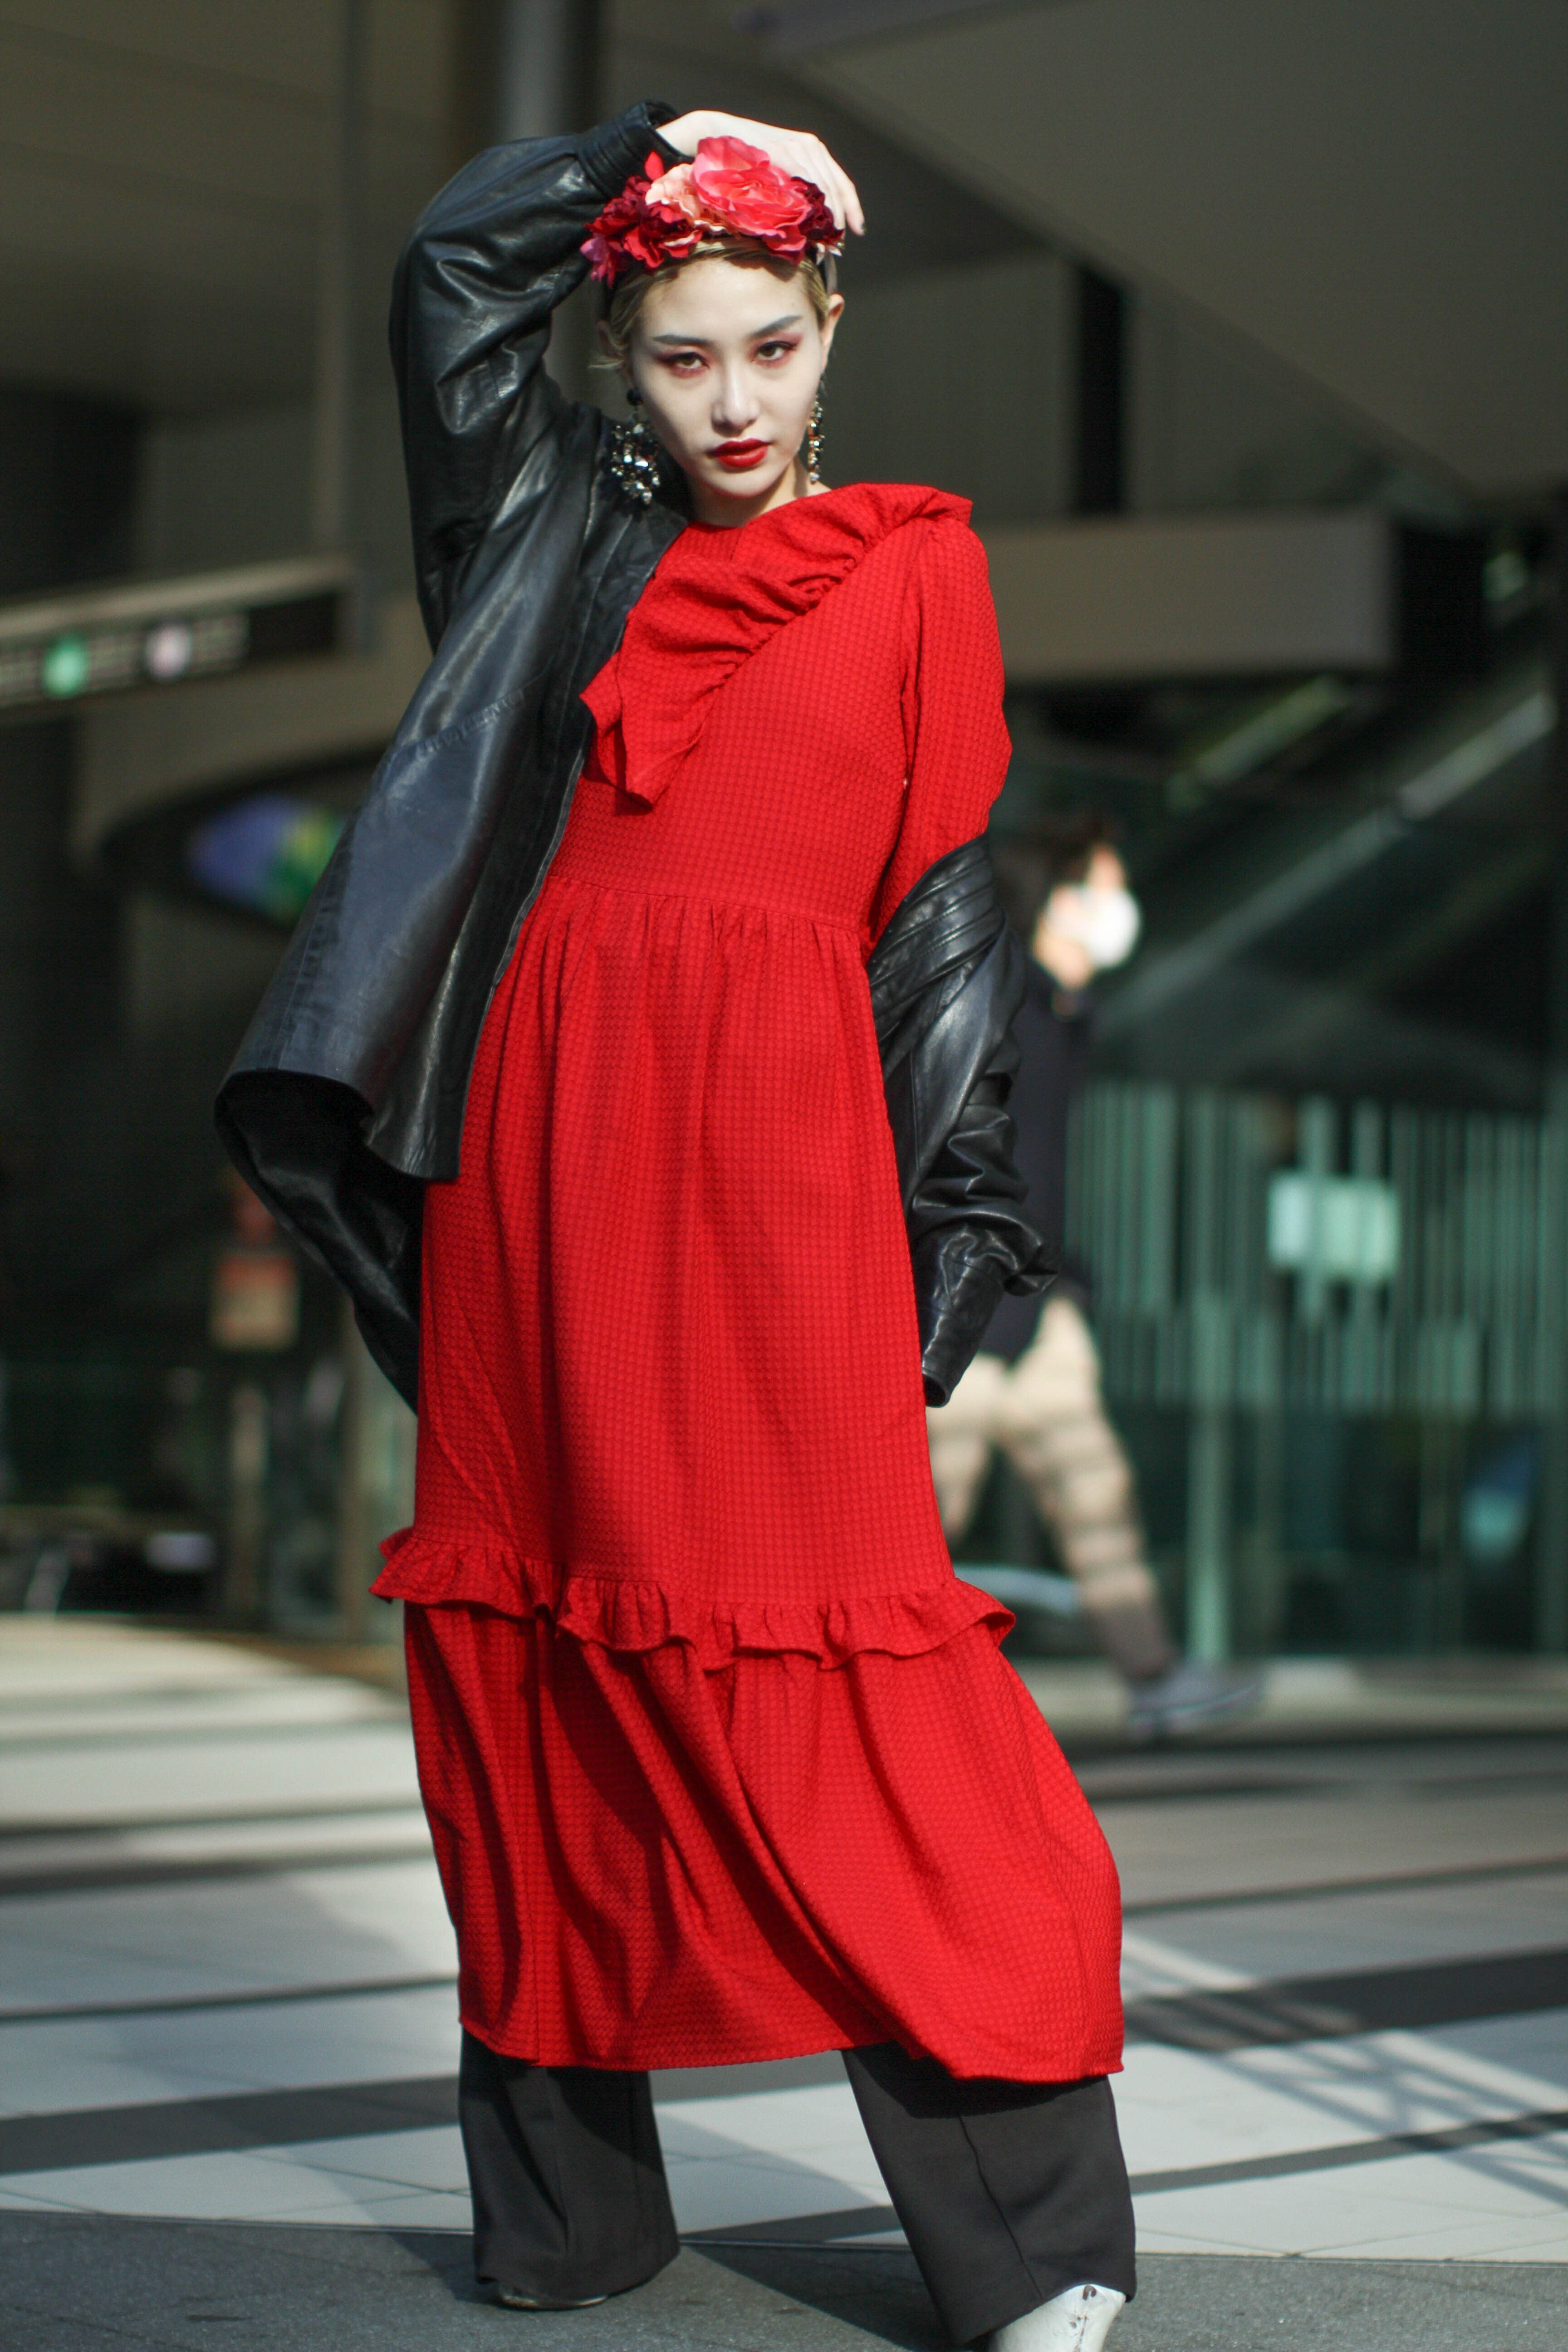 These Photos Of Tokyo Fashion Are All The Style Inspiration You Need